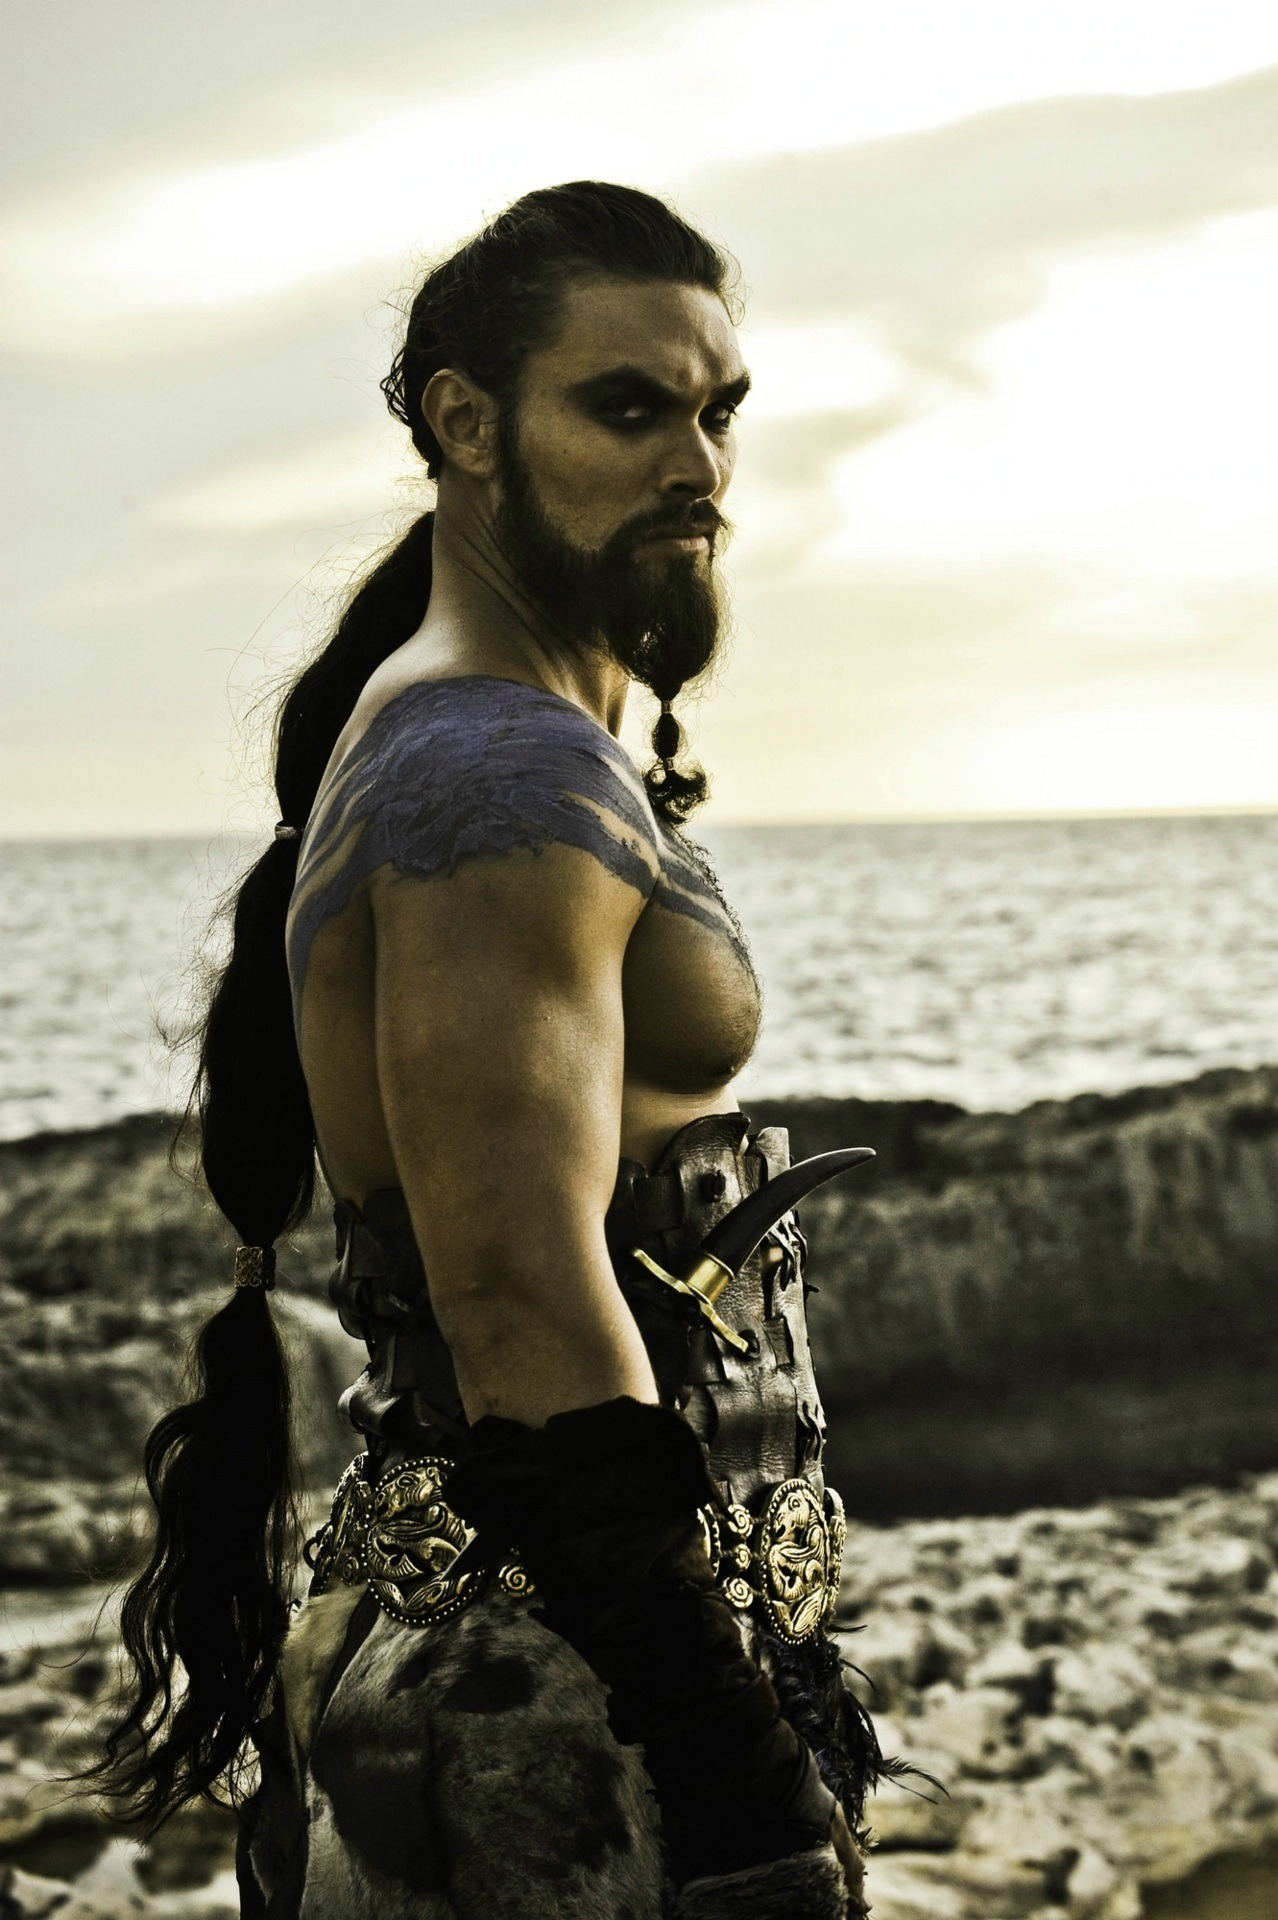 Jason Momoa as Khal Drogo in Game of Thrones, season 1 Drogo is the Scarecrow of the Game of Thrones because I think I'll miss him most of all. Fierce warrior man!